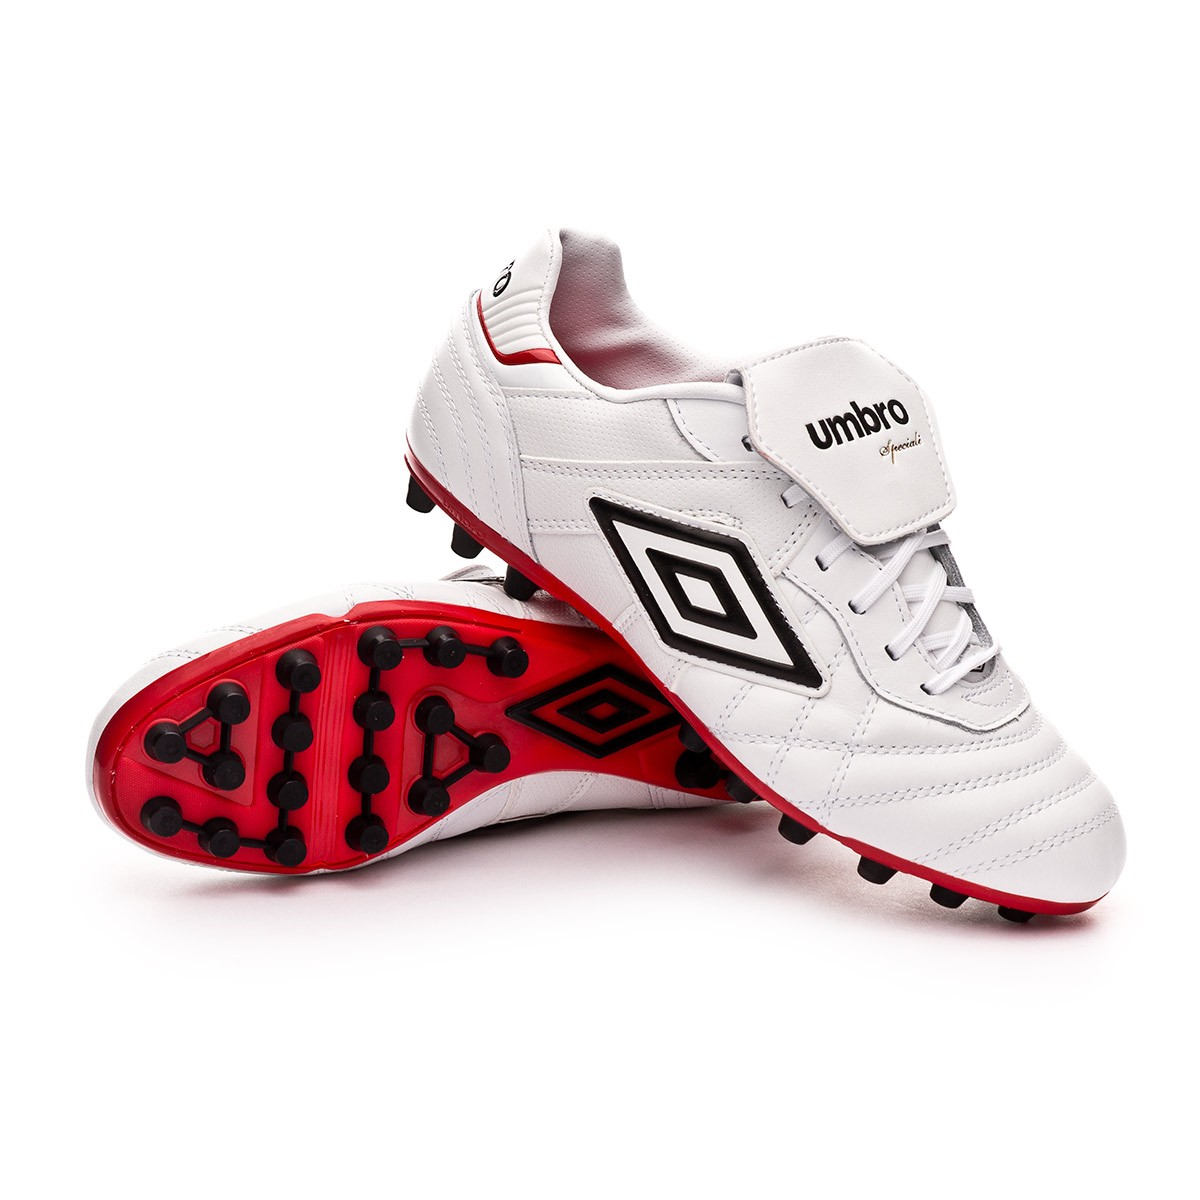 first look low cost preview of Umbro Speciali Eternal Team AG Football Boots